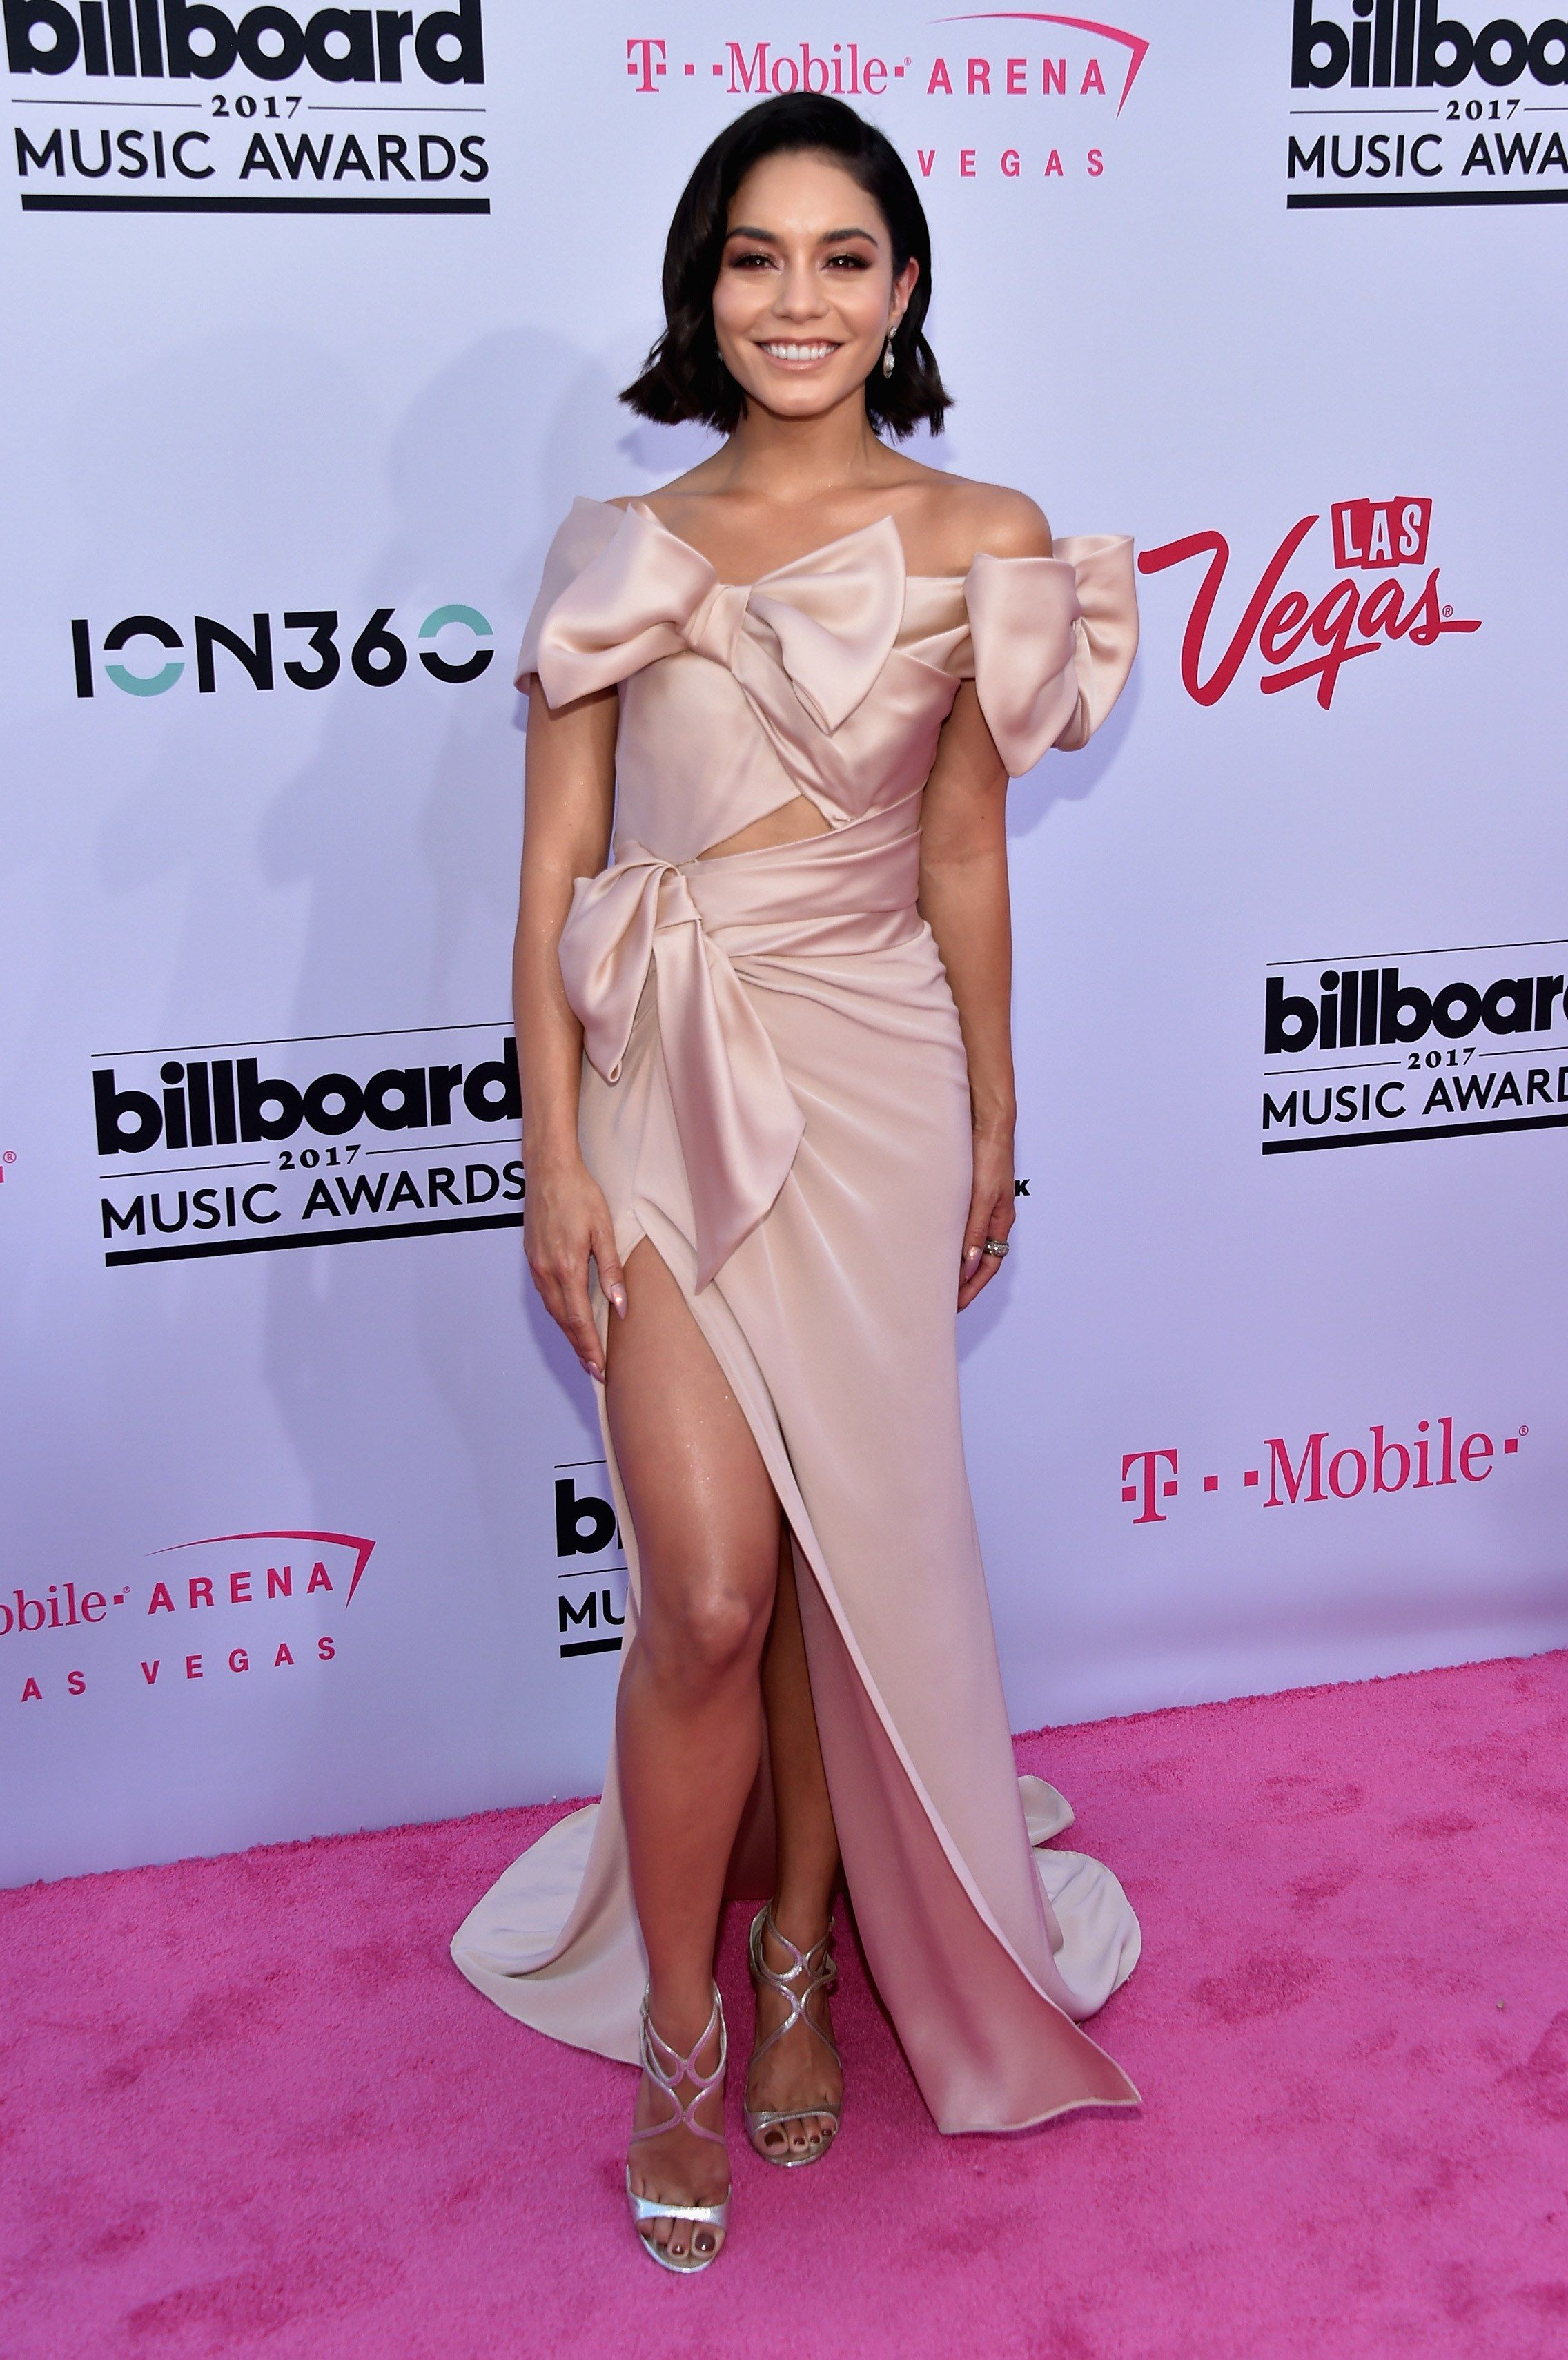 It S Official Cher Won The Billboard Awards Billboard Music Awards 2017 Billboard Music Awards Red Carpet Billboard Music Awards